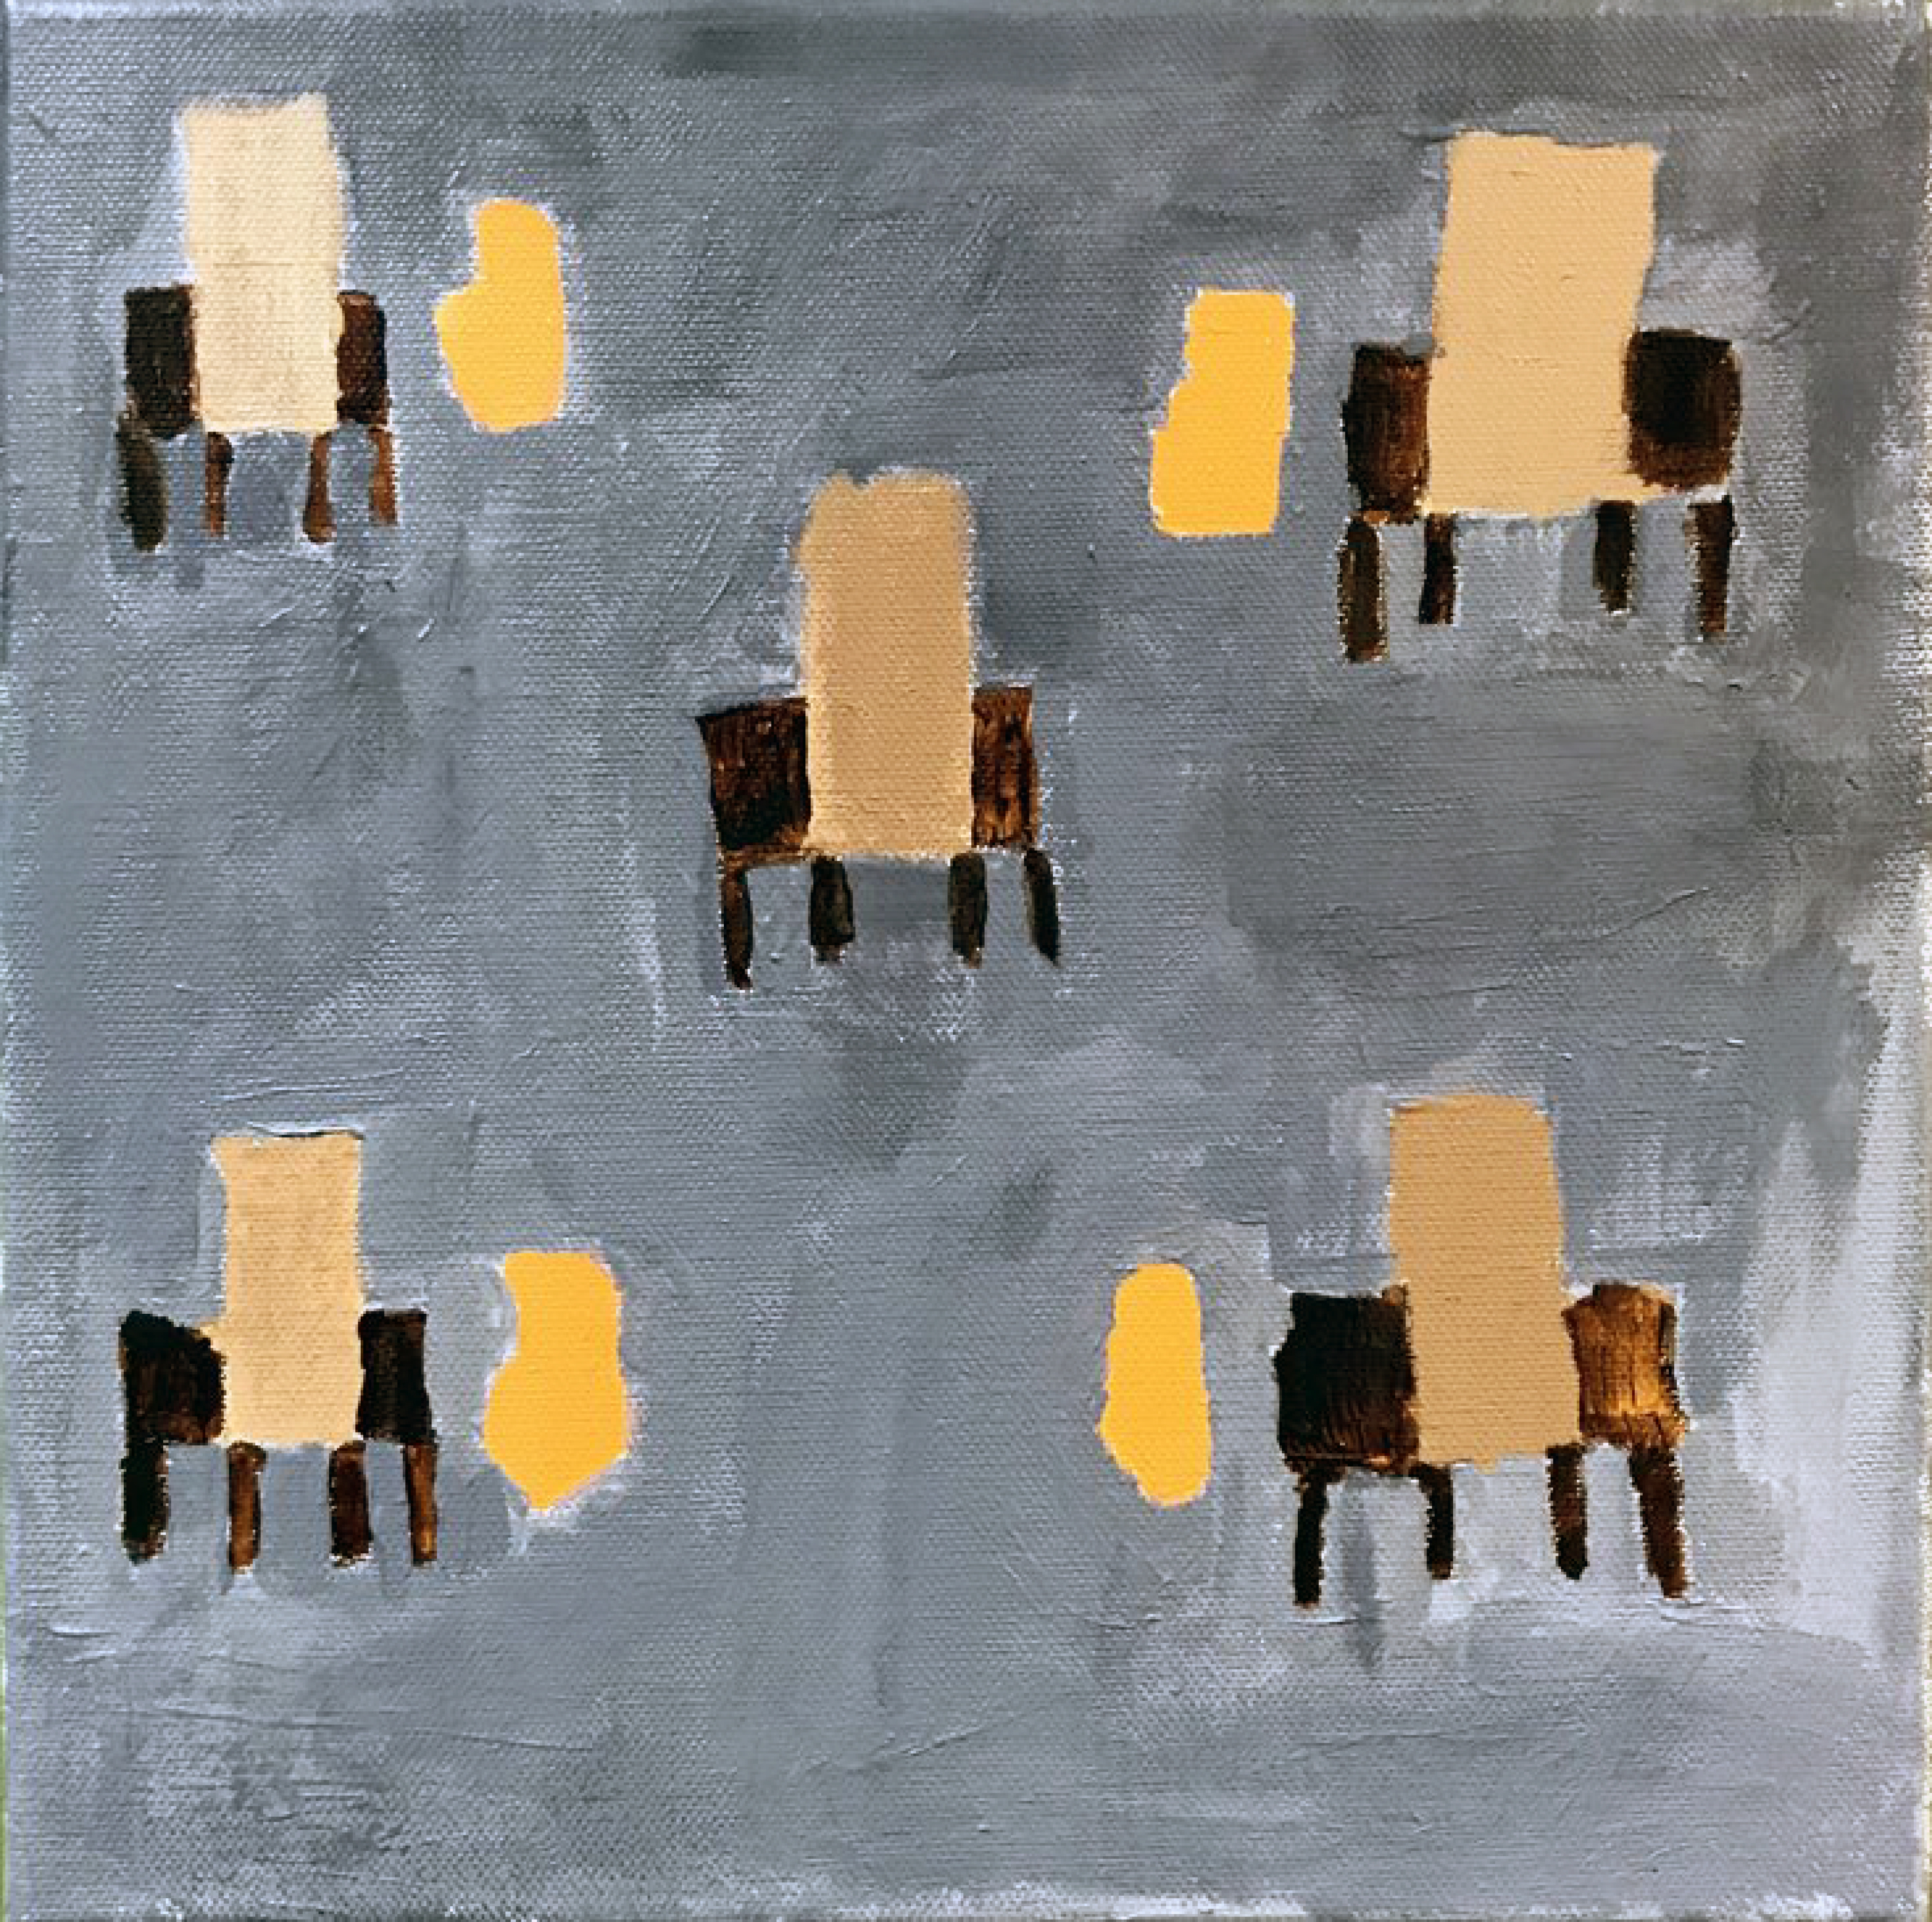 A painting with five desks. The background is solid gray, and four of the desks have orange backpacks next to them.